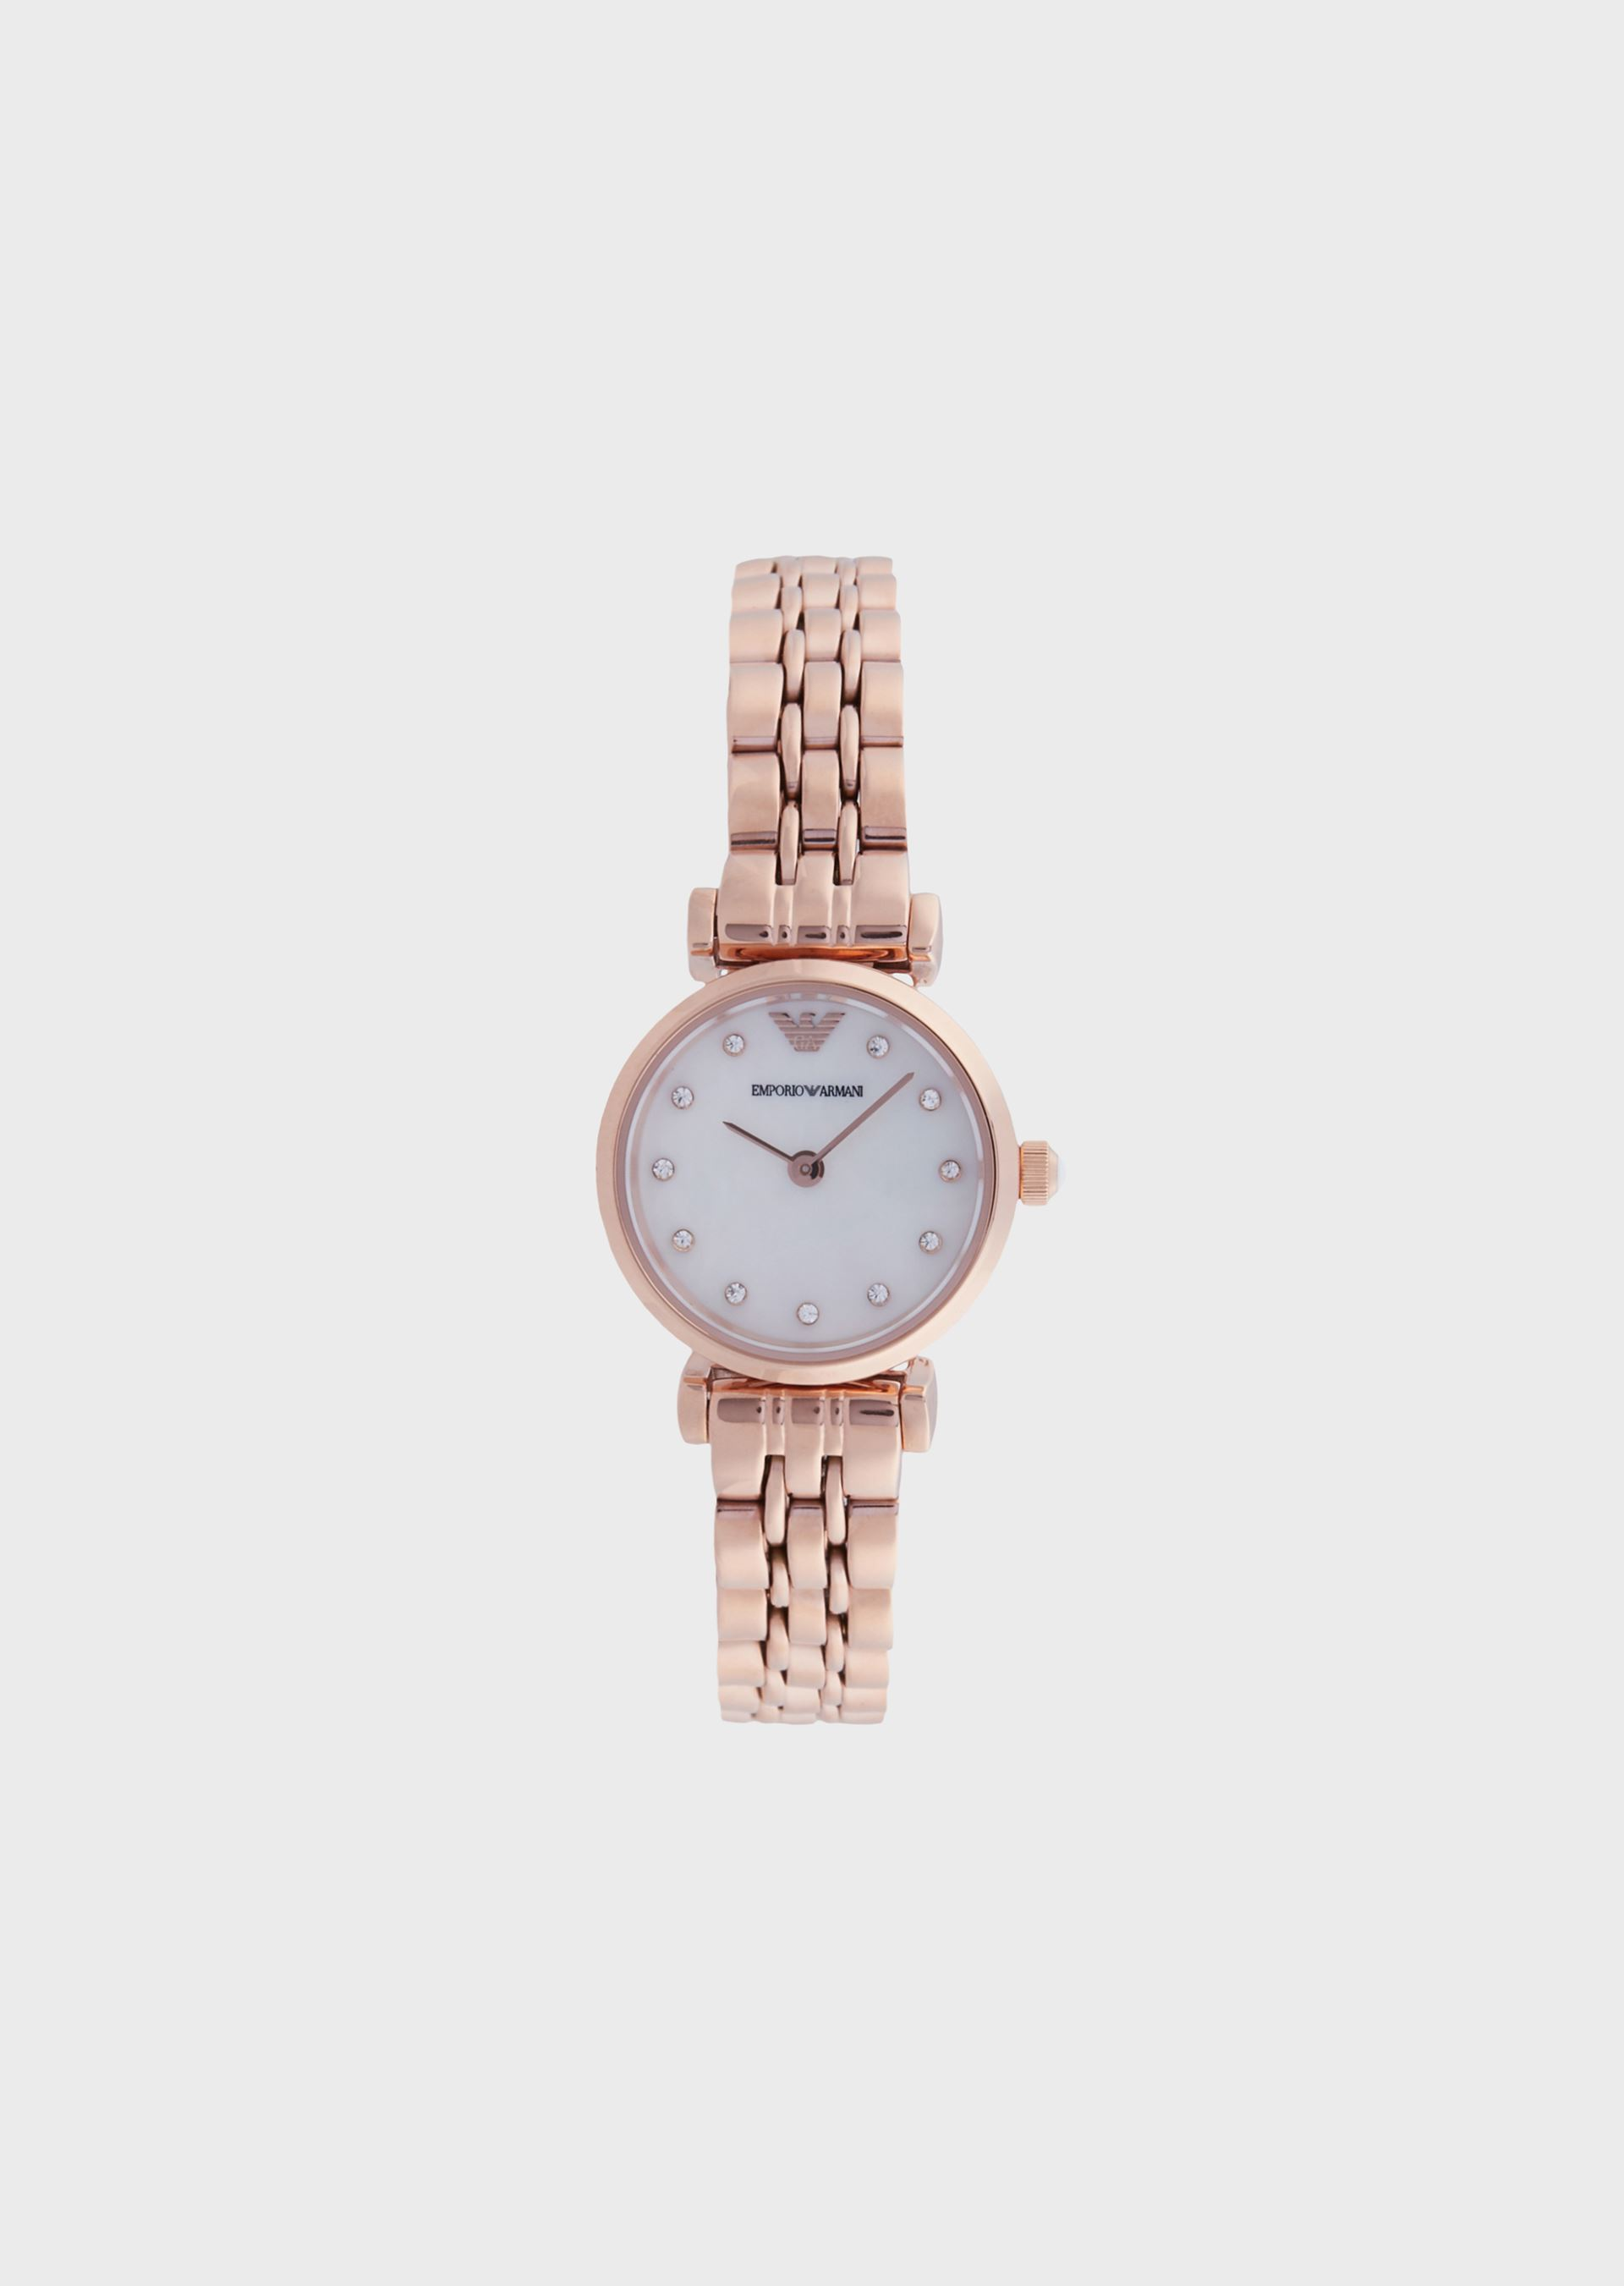 EMPORIO ARMANI Woman two-hand stainless steel watch